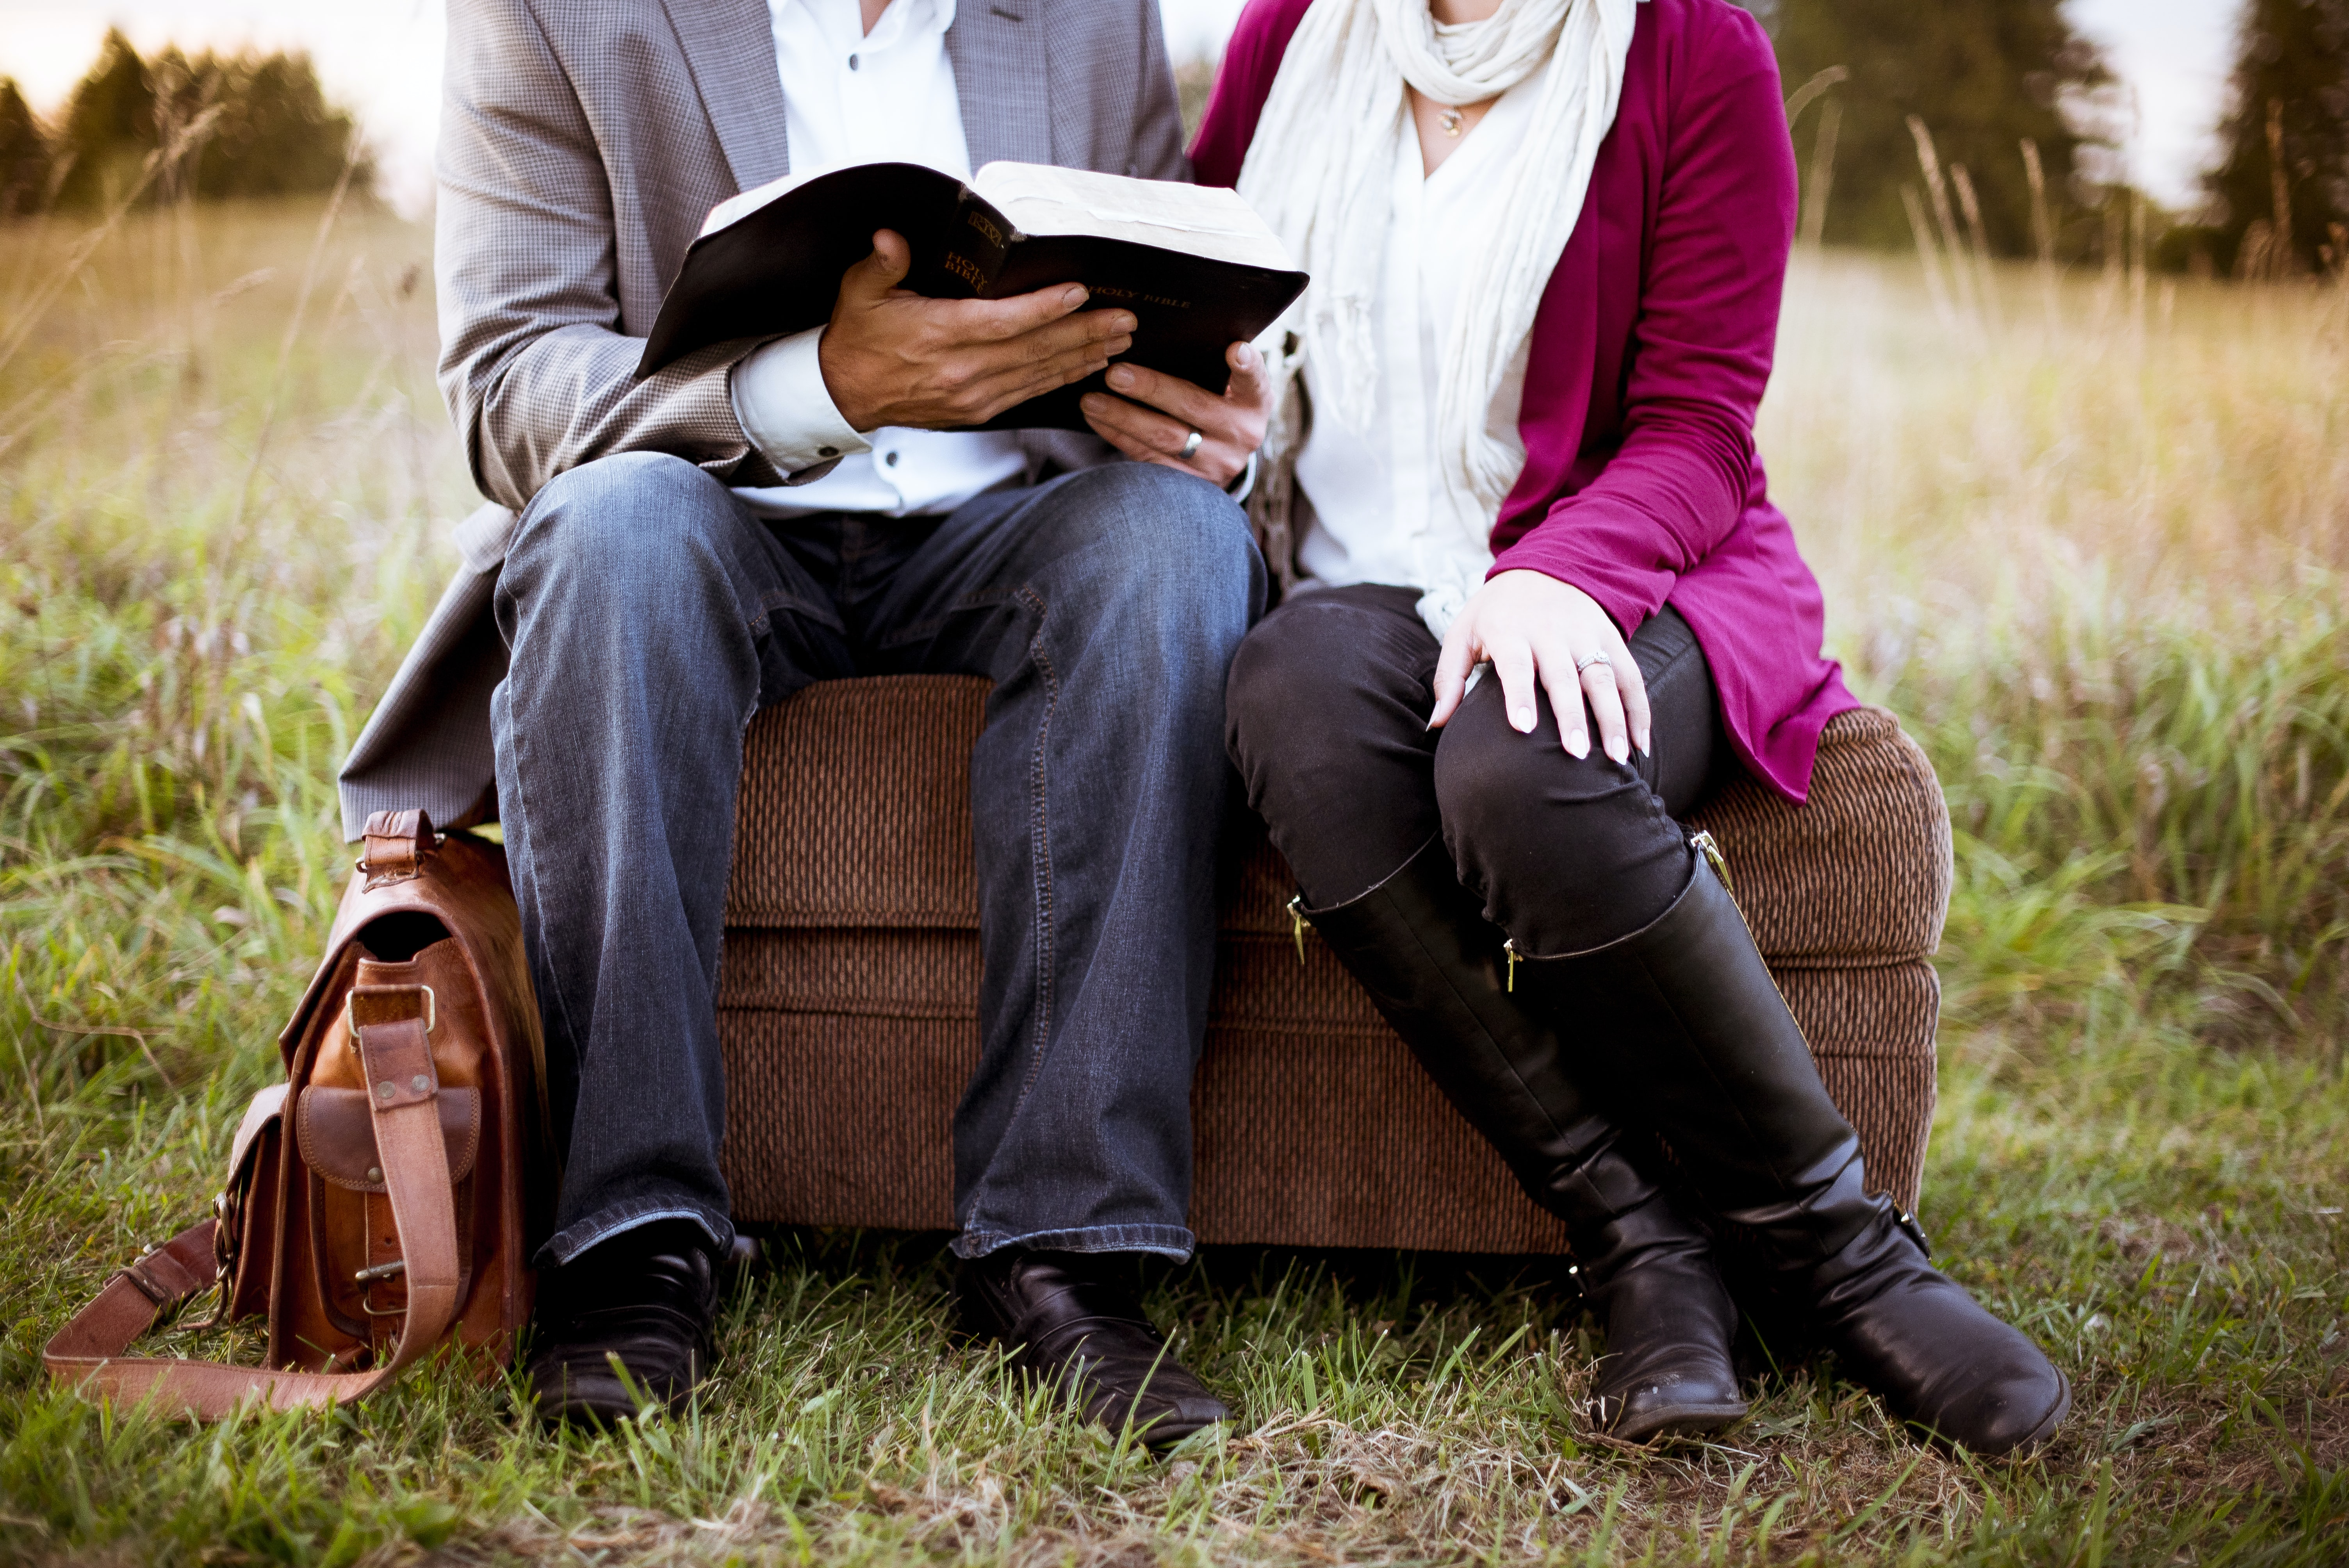 A married couple sitting on an ottoman outdoors. He is reading a book.